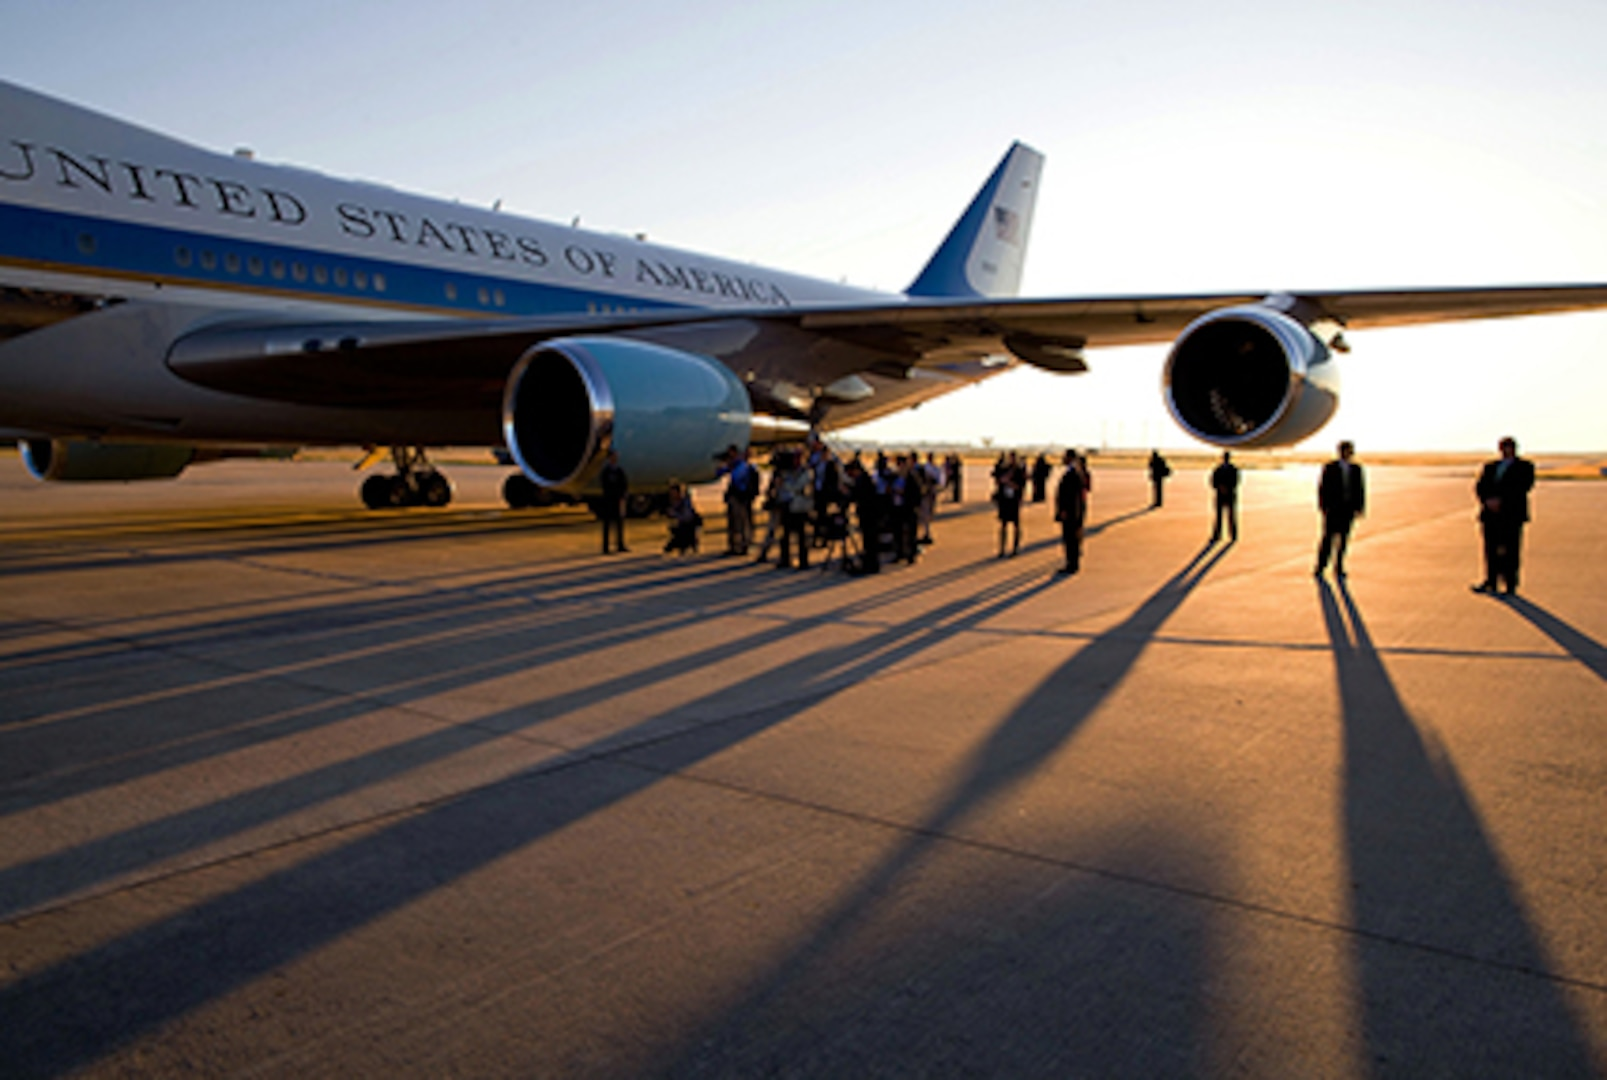 Defense Logistics Agency Energy Pacific at Guam quality assurance representative recently enabled timely support of presidential aircraft Air Force One in the nation of Laos.